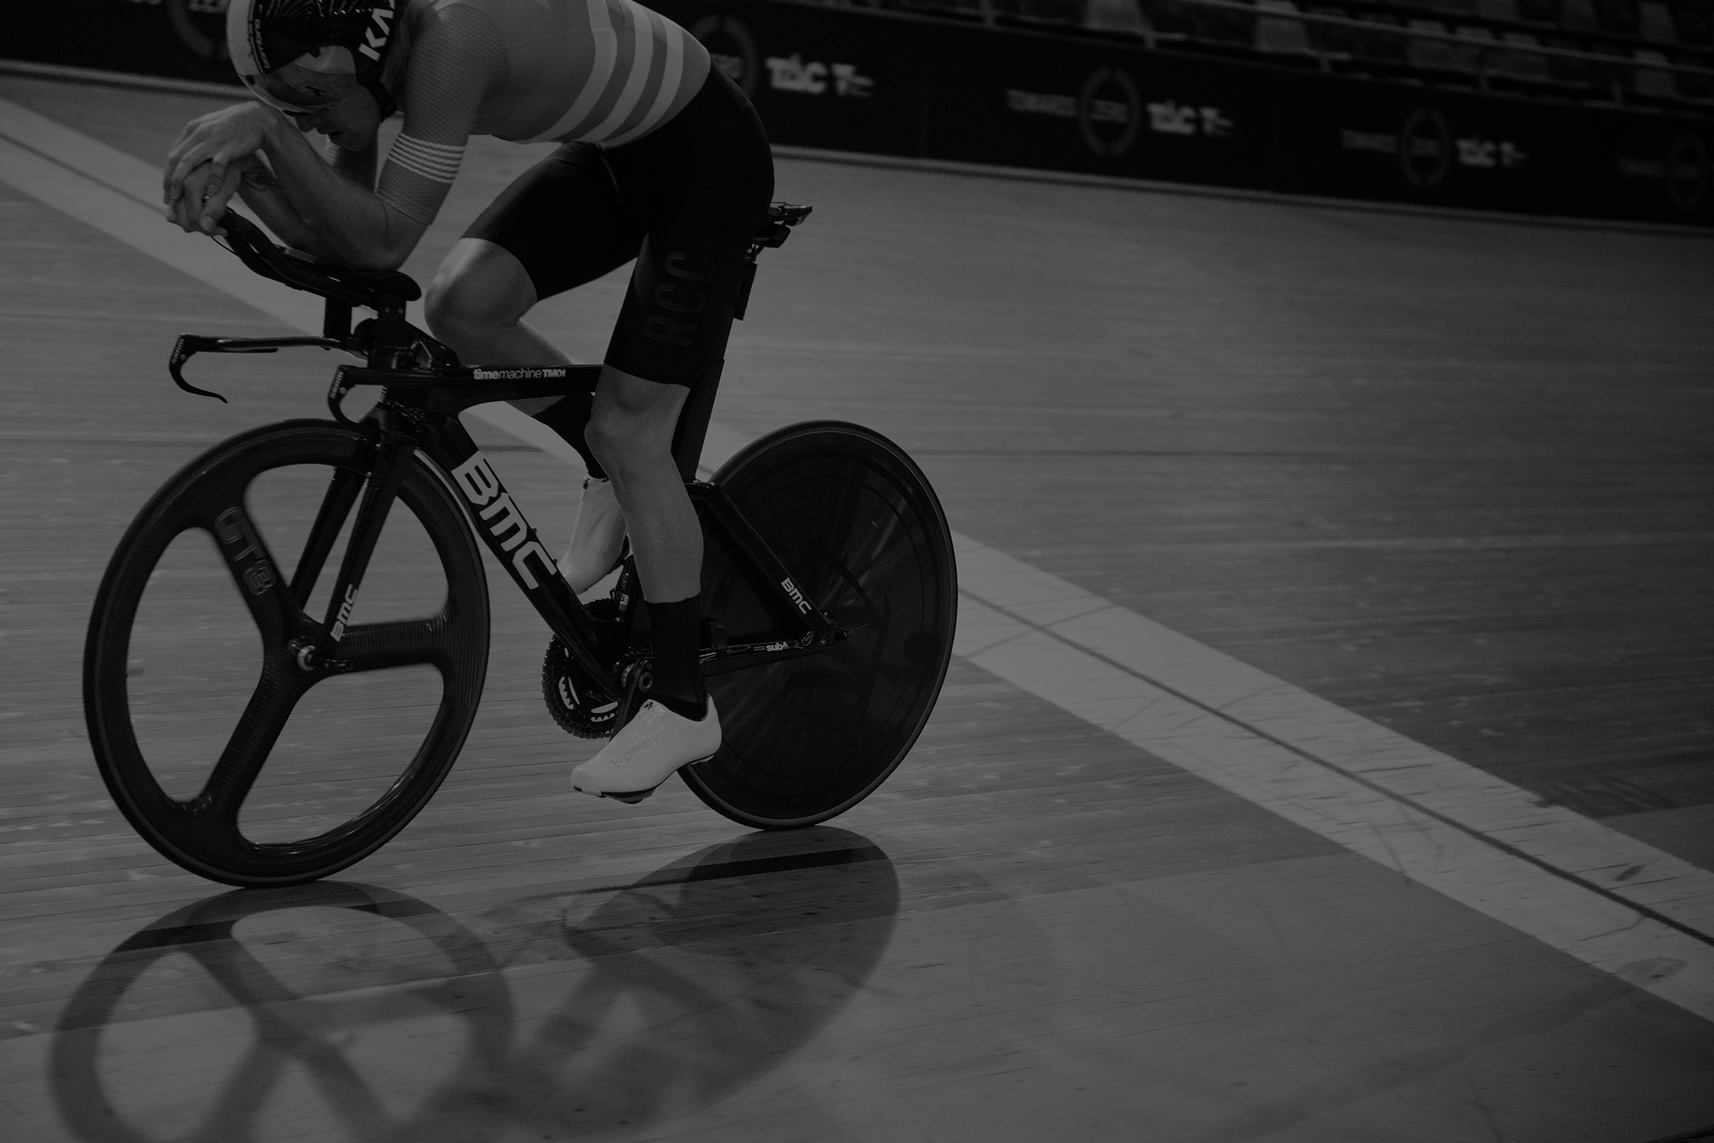 _ - Positional changes and aero techniques you employ yield the greatest potential to increase aerodynamic efficiency and improve time trial performance. Track aero testing is the ultimate biomechanical analysis method to refine your time trial position.